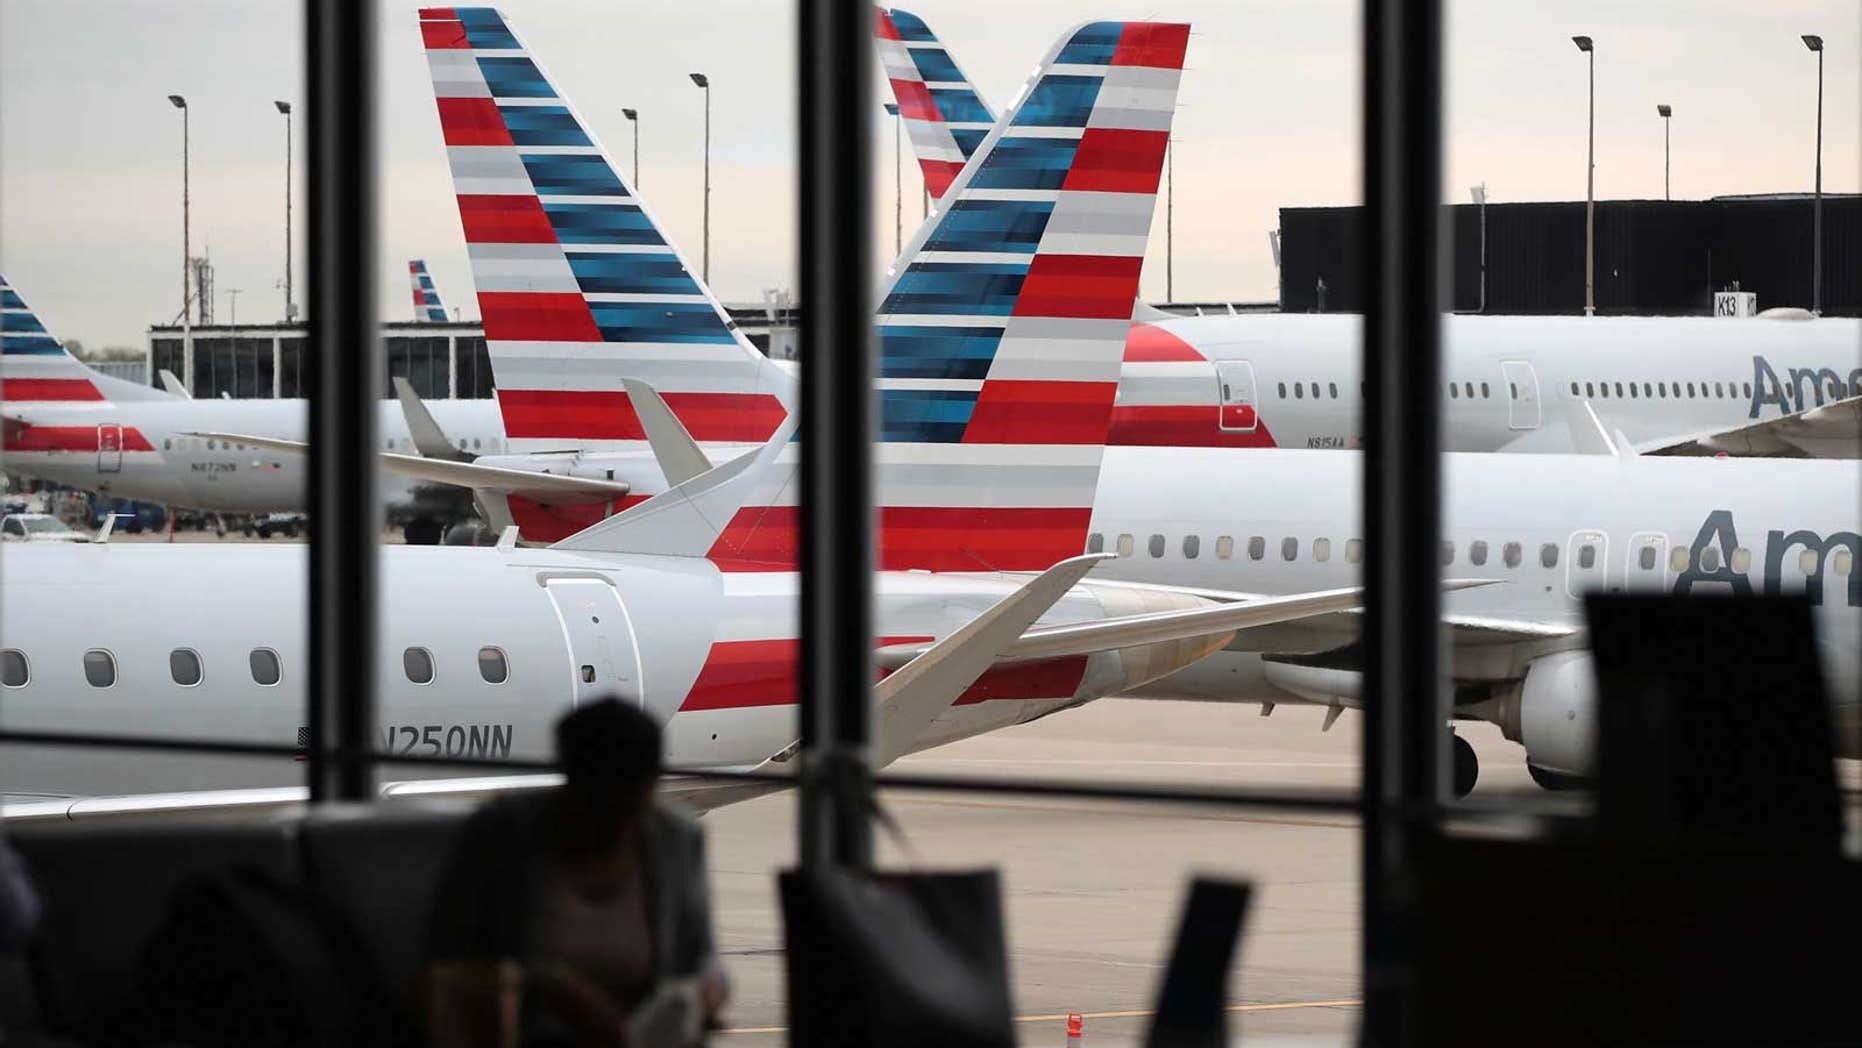 Members of a group of students flying to Boston from Miami were reported to be ill during flight.